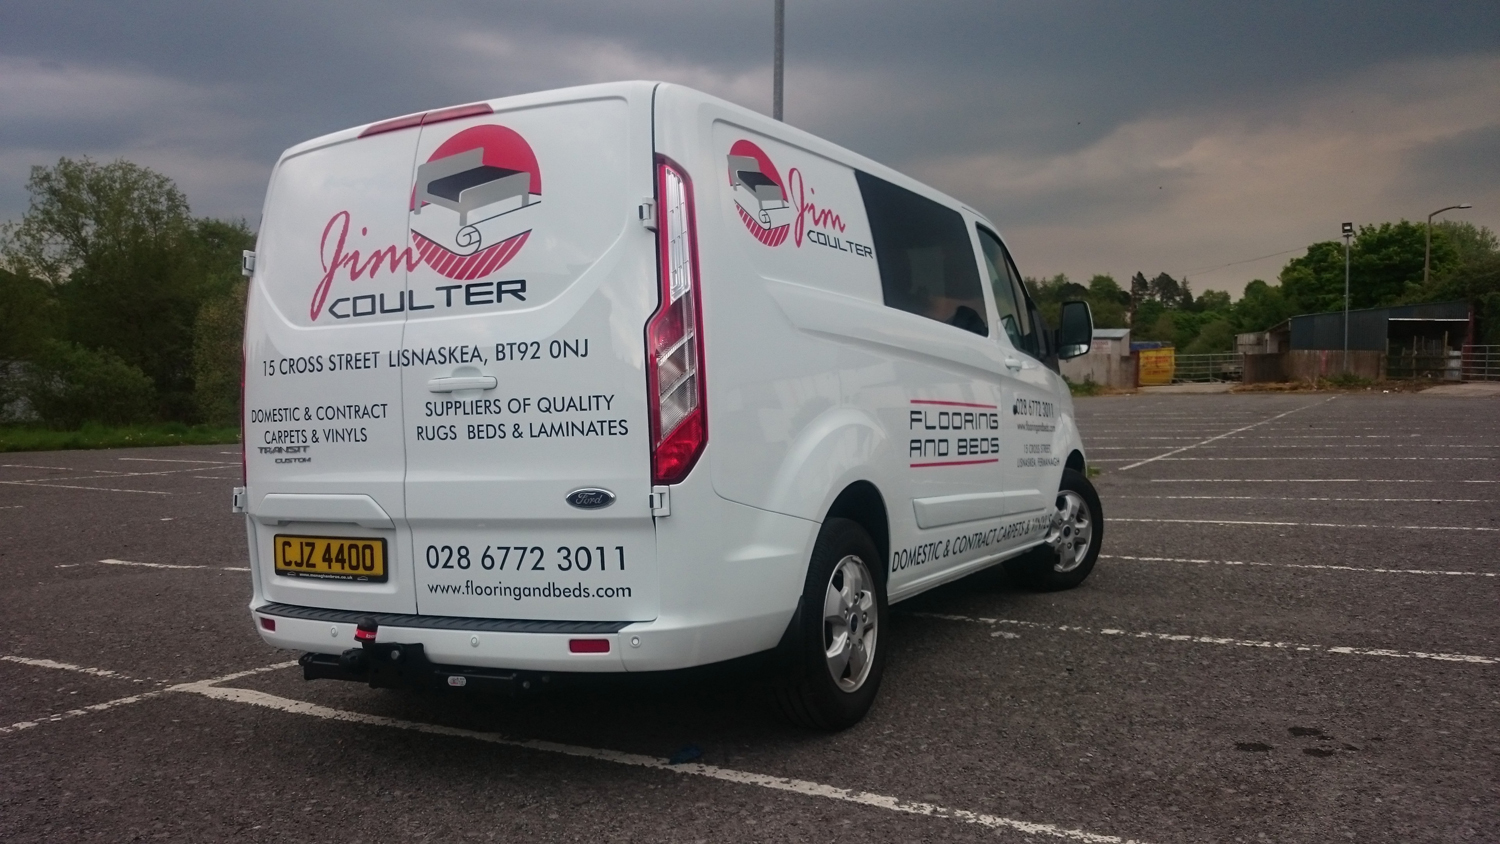 At LE Graphics We Design And Fit Vehicle Graphics To A Wide Range Of Vans,  Lorries And Cars For All Types Of Business.